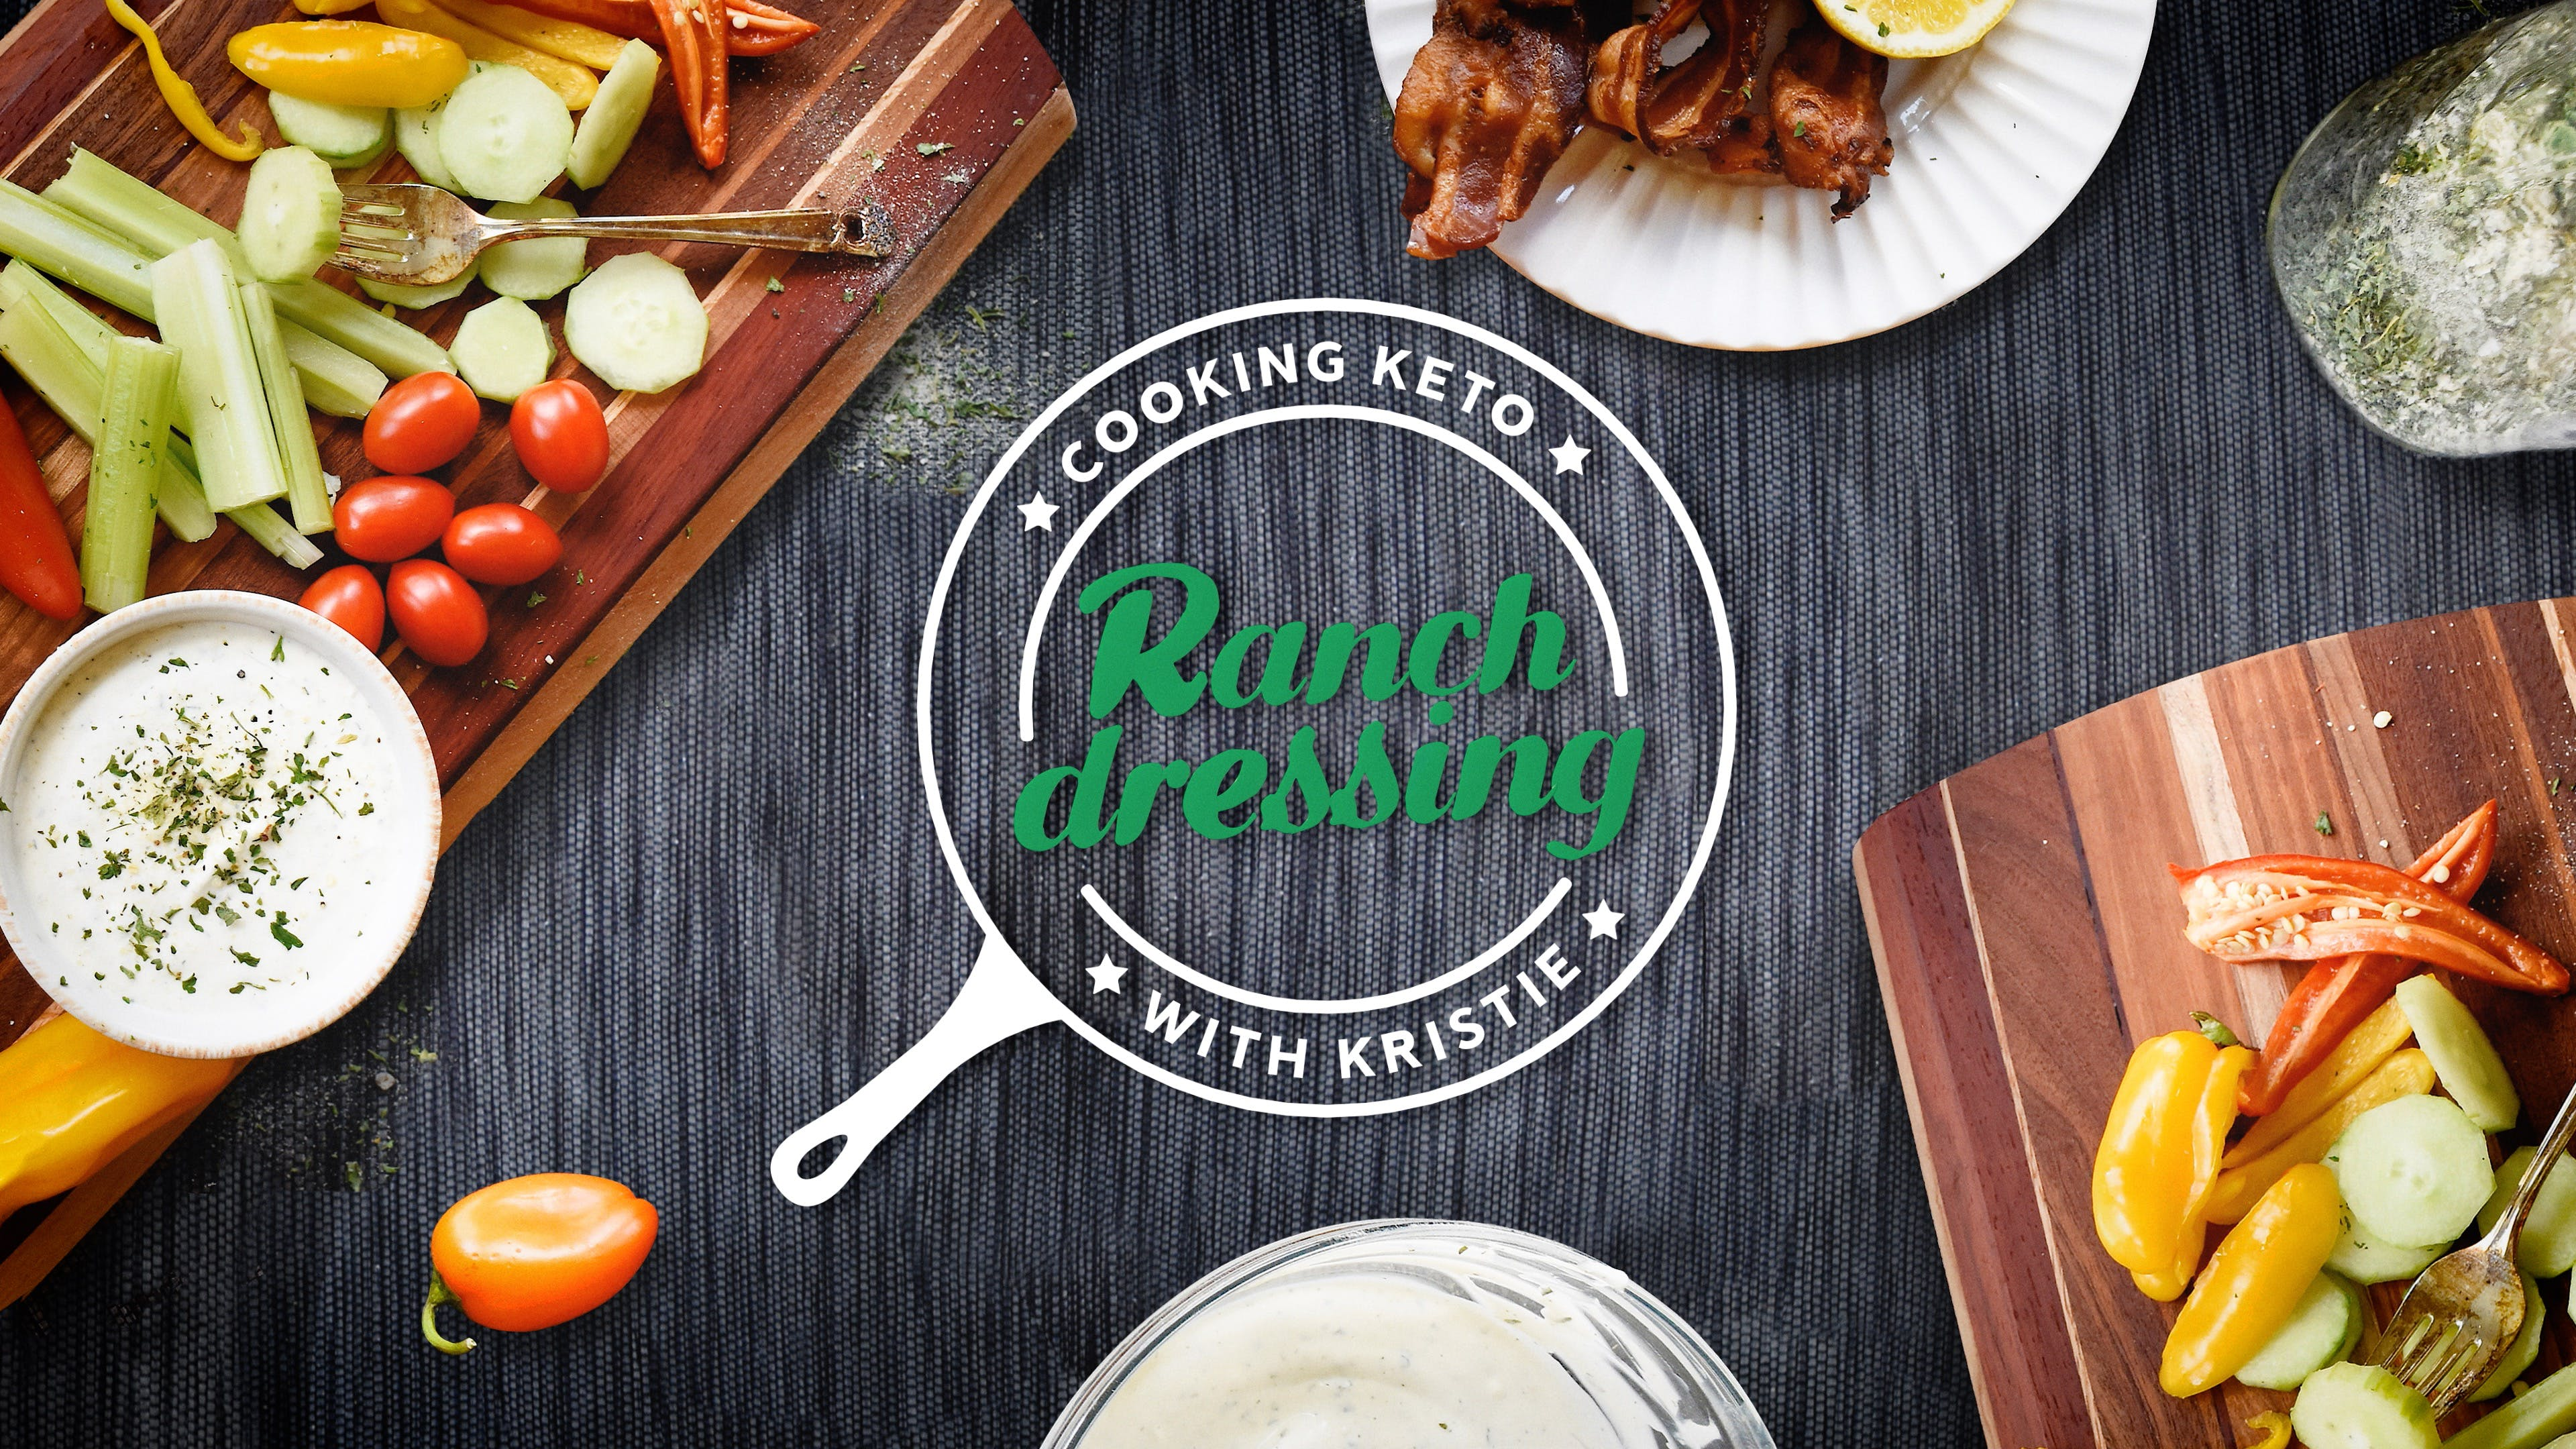 Cooking Ranch dressing with Kristie